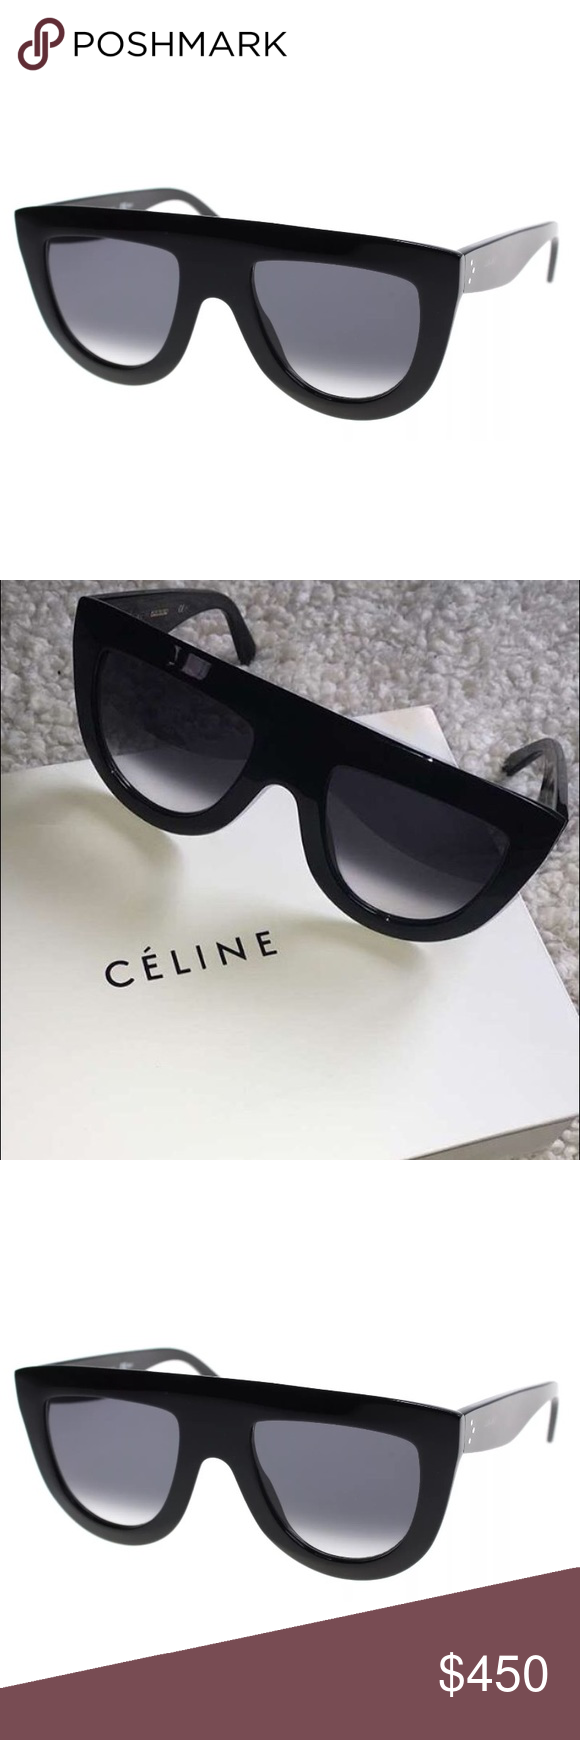 f5874ed7ec Celine Andrea frame flat top shadow sunglasses Brand New Celine Sunglasses  CL41398 S Col 807 Size 52 mm. Comes With Celine Case